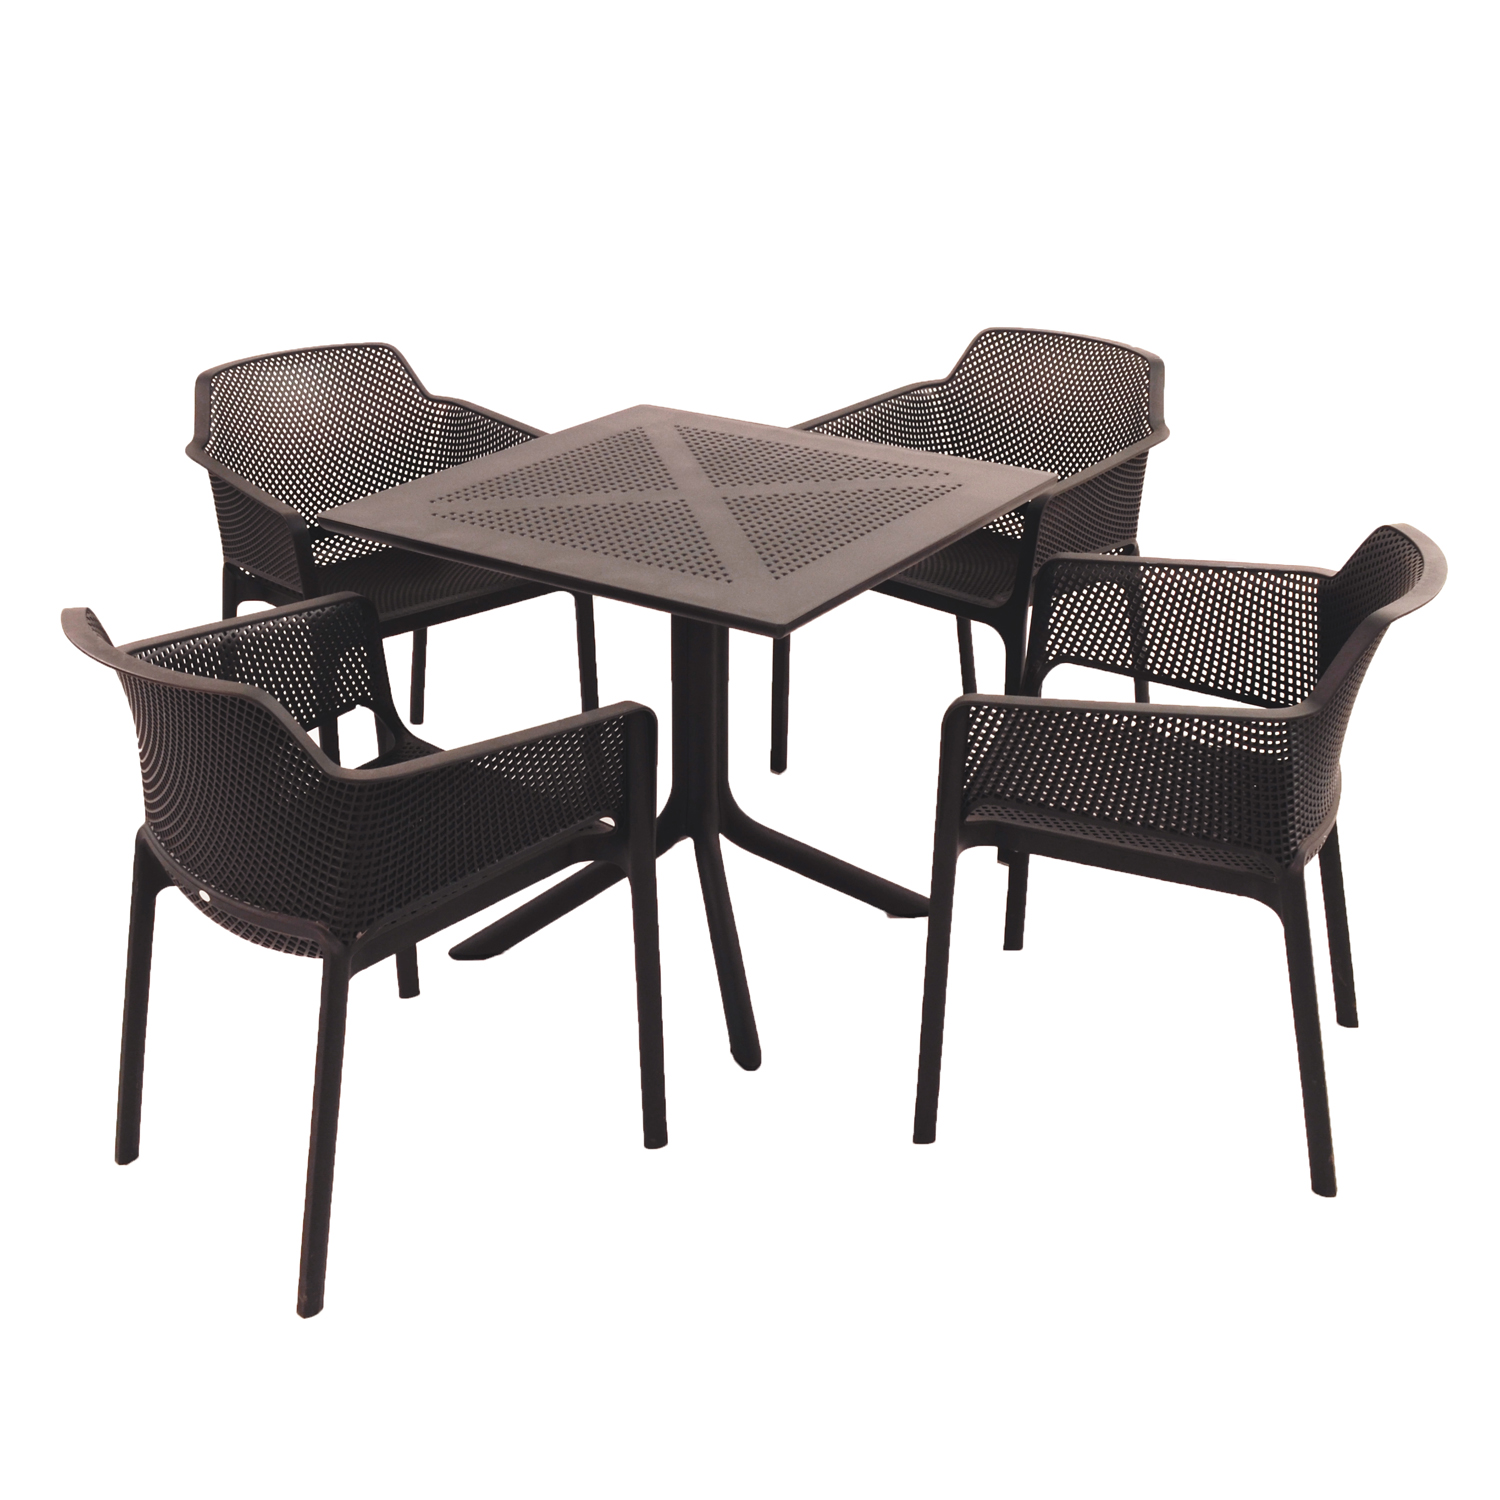 Nardi Anthracite Clip Table with 4 Net Chair Set - Ruby's Garden Boutique